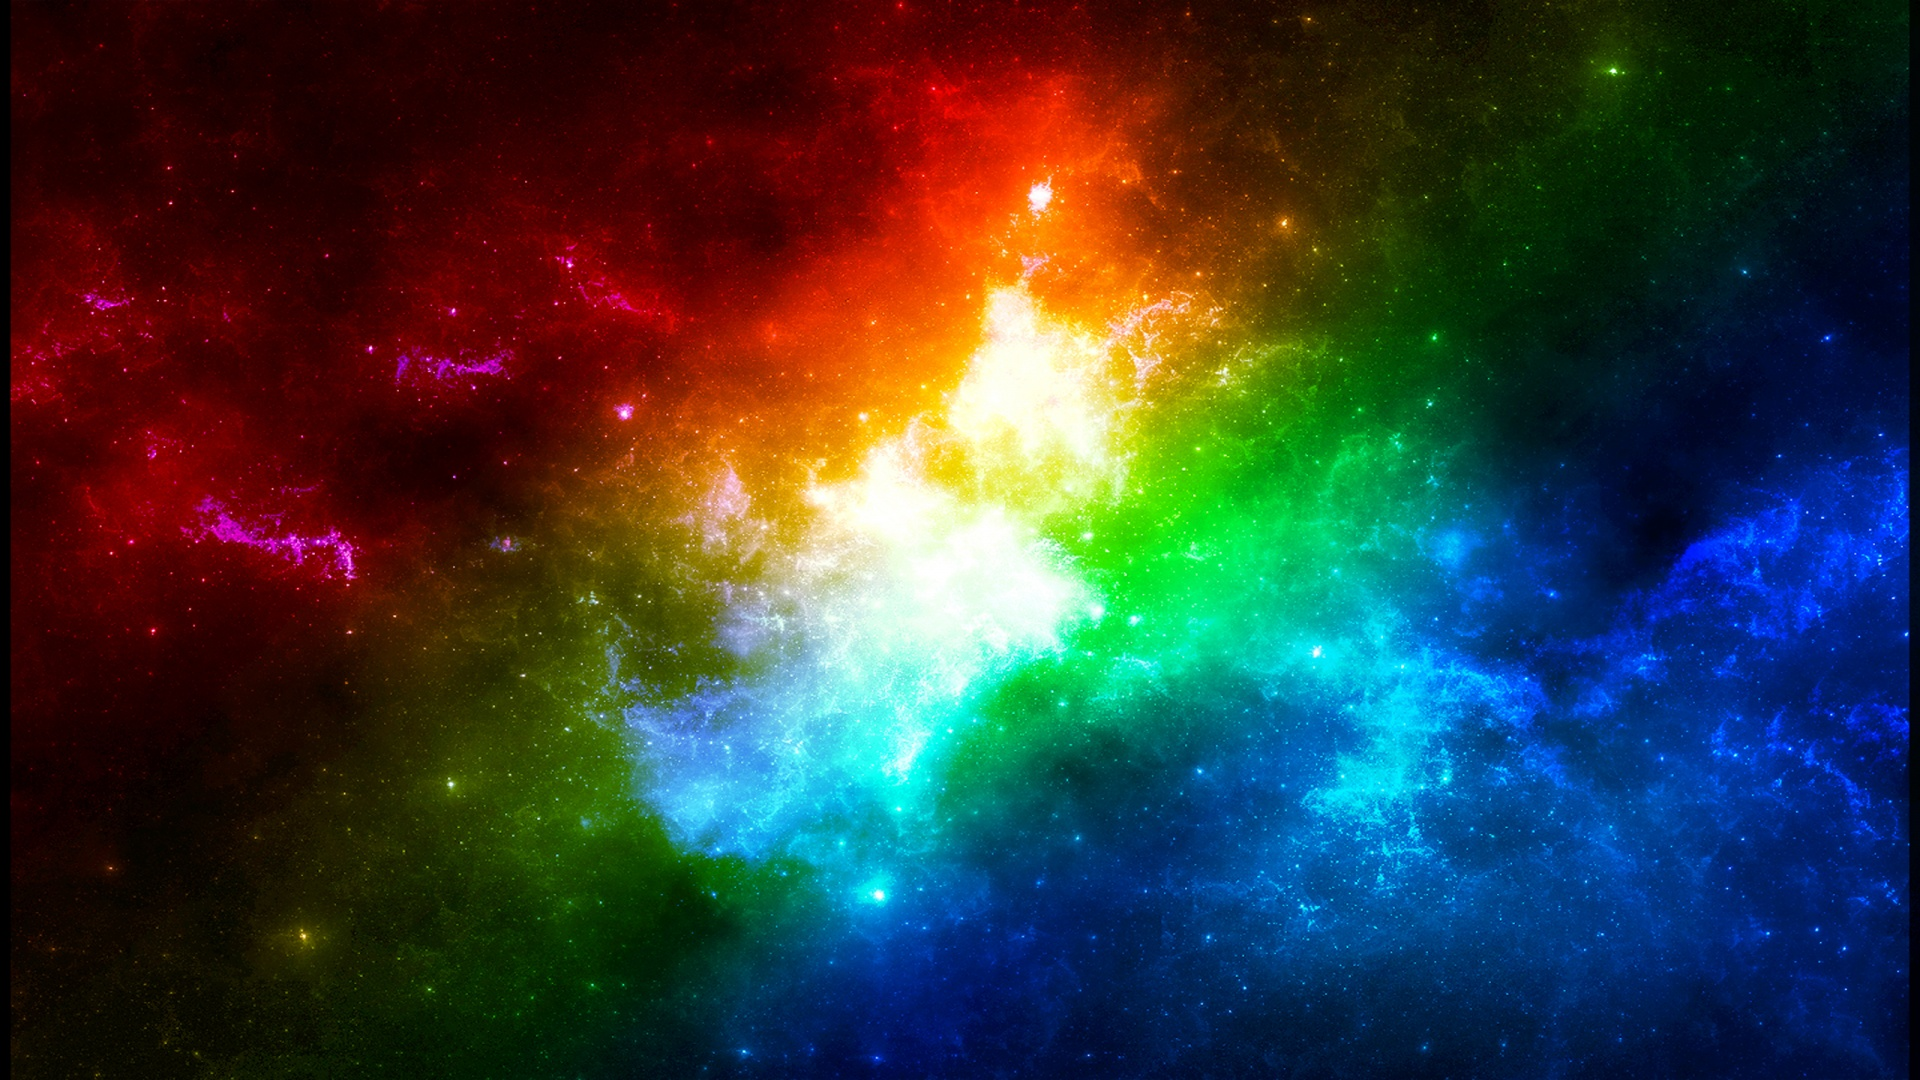 colorful nebula iphone wallpaper - photo #17